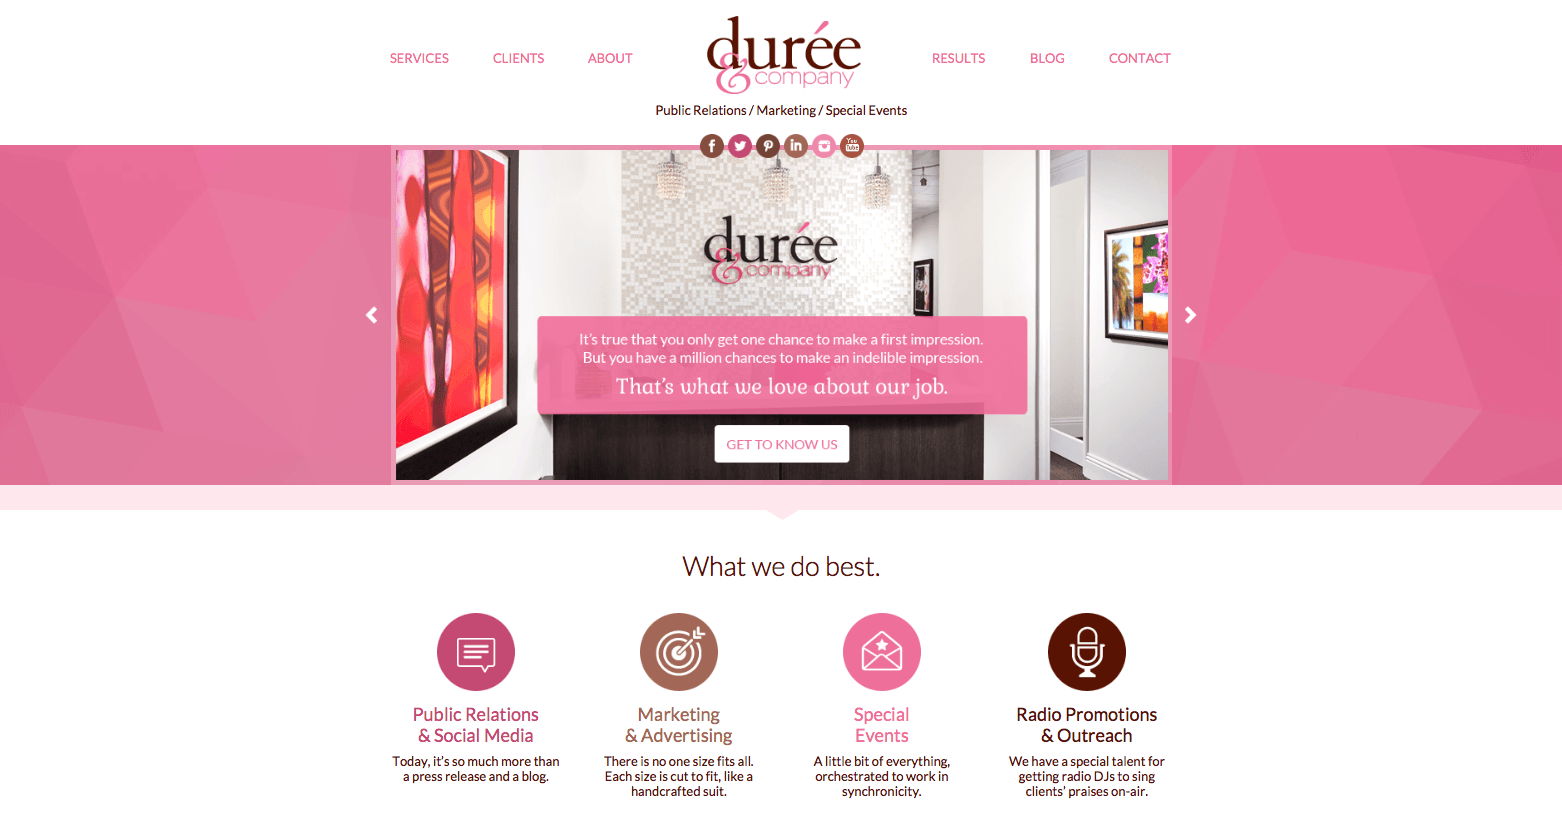 Durée and company website public relations marketing special events